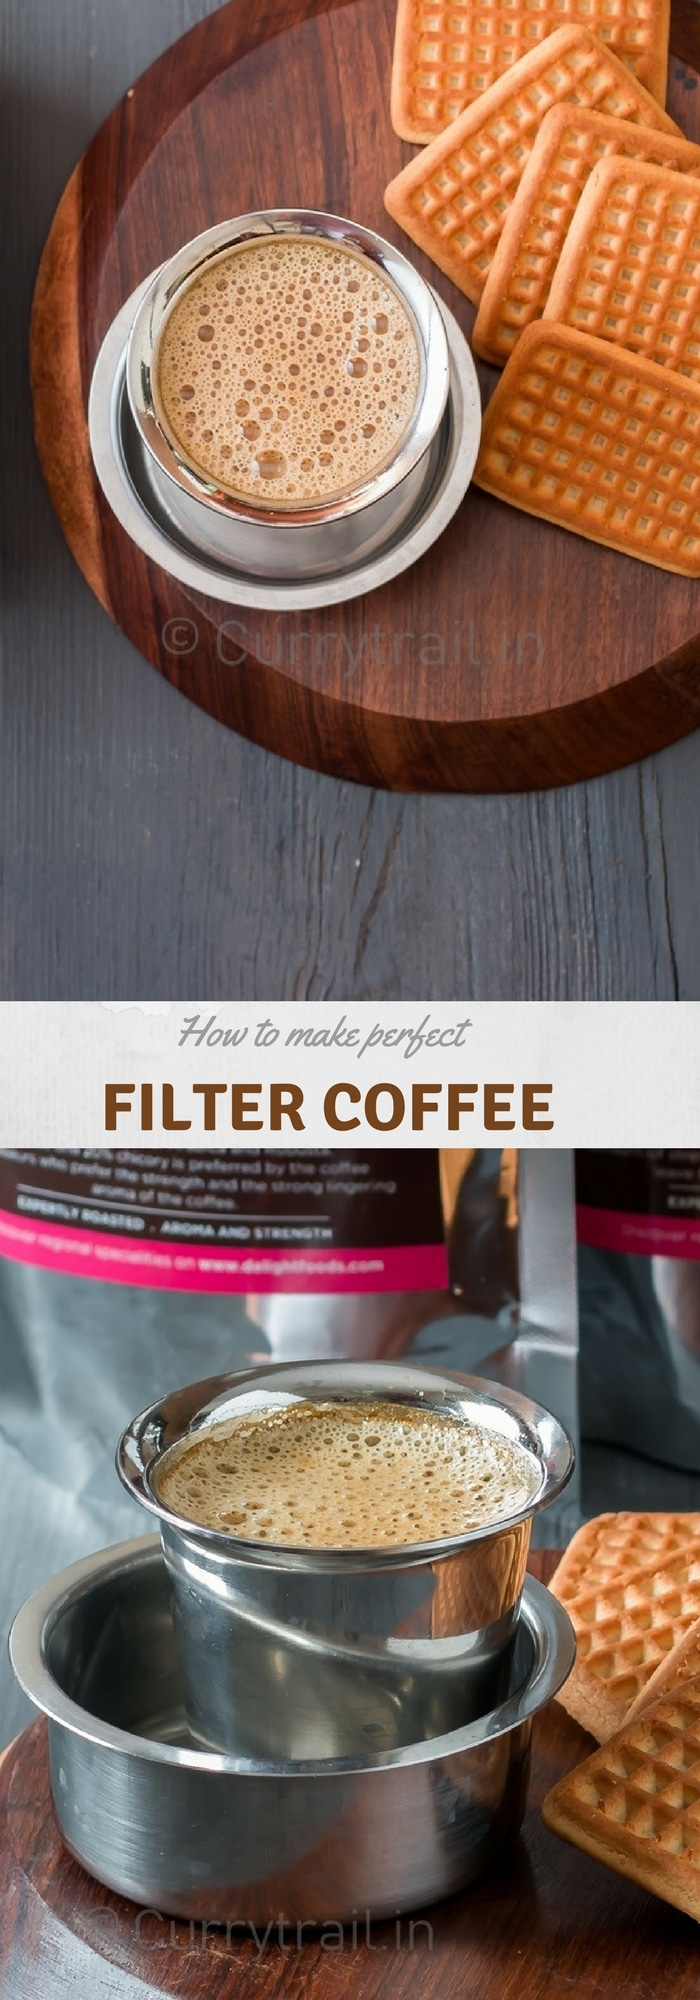 Learn to make the perfect filter coffee